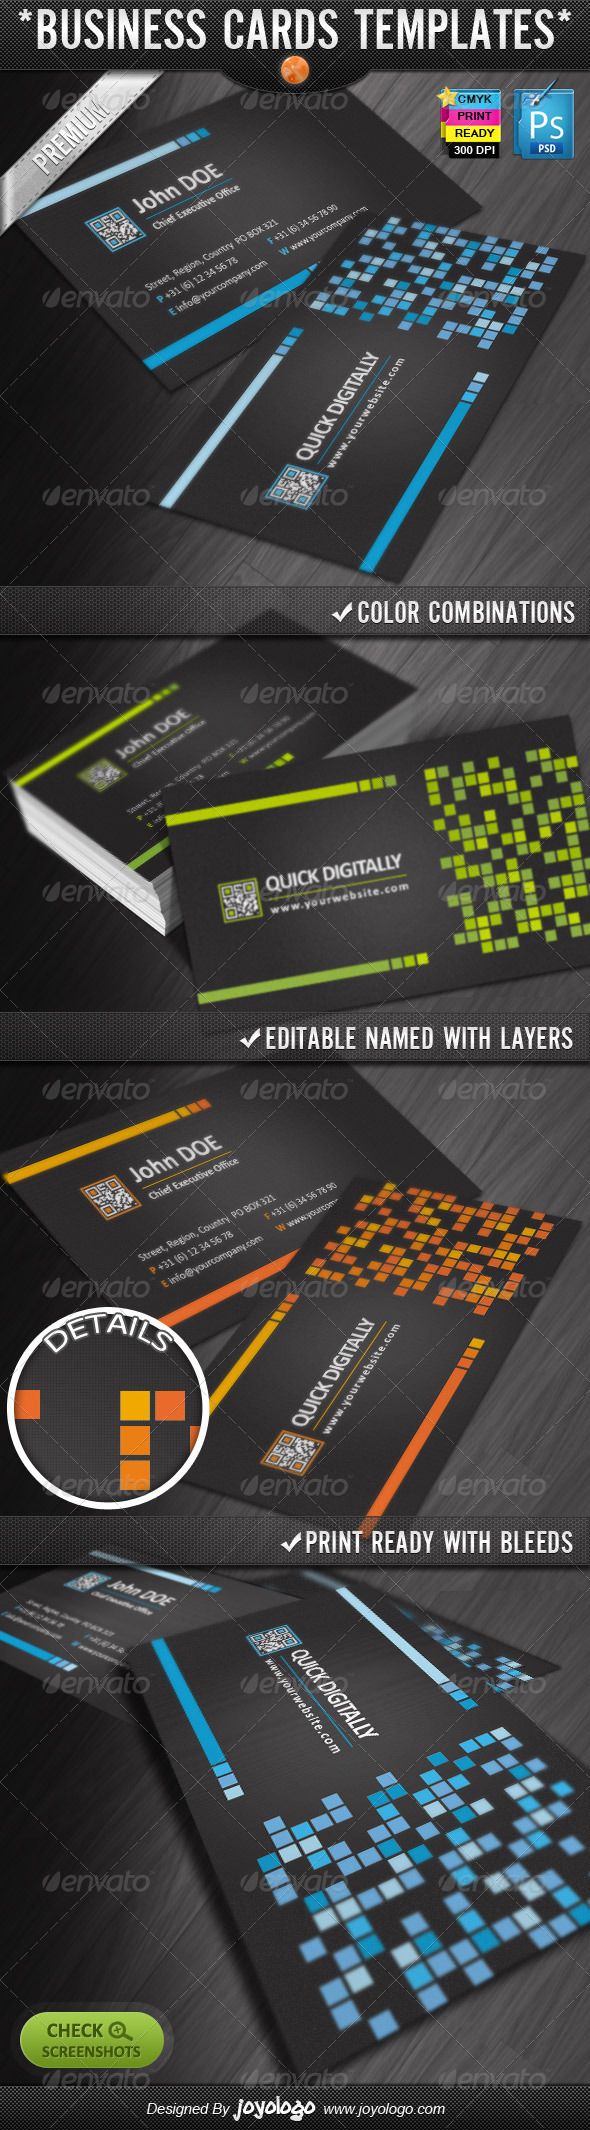 GraphicRiver Digitally Quick Response Business Cards Designs 2301371